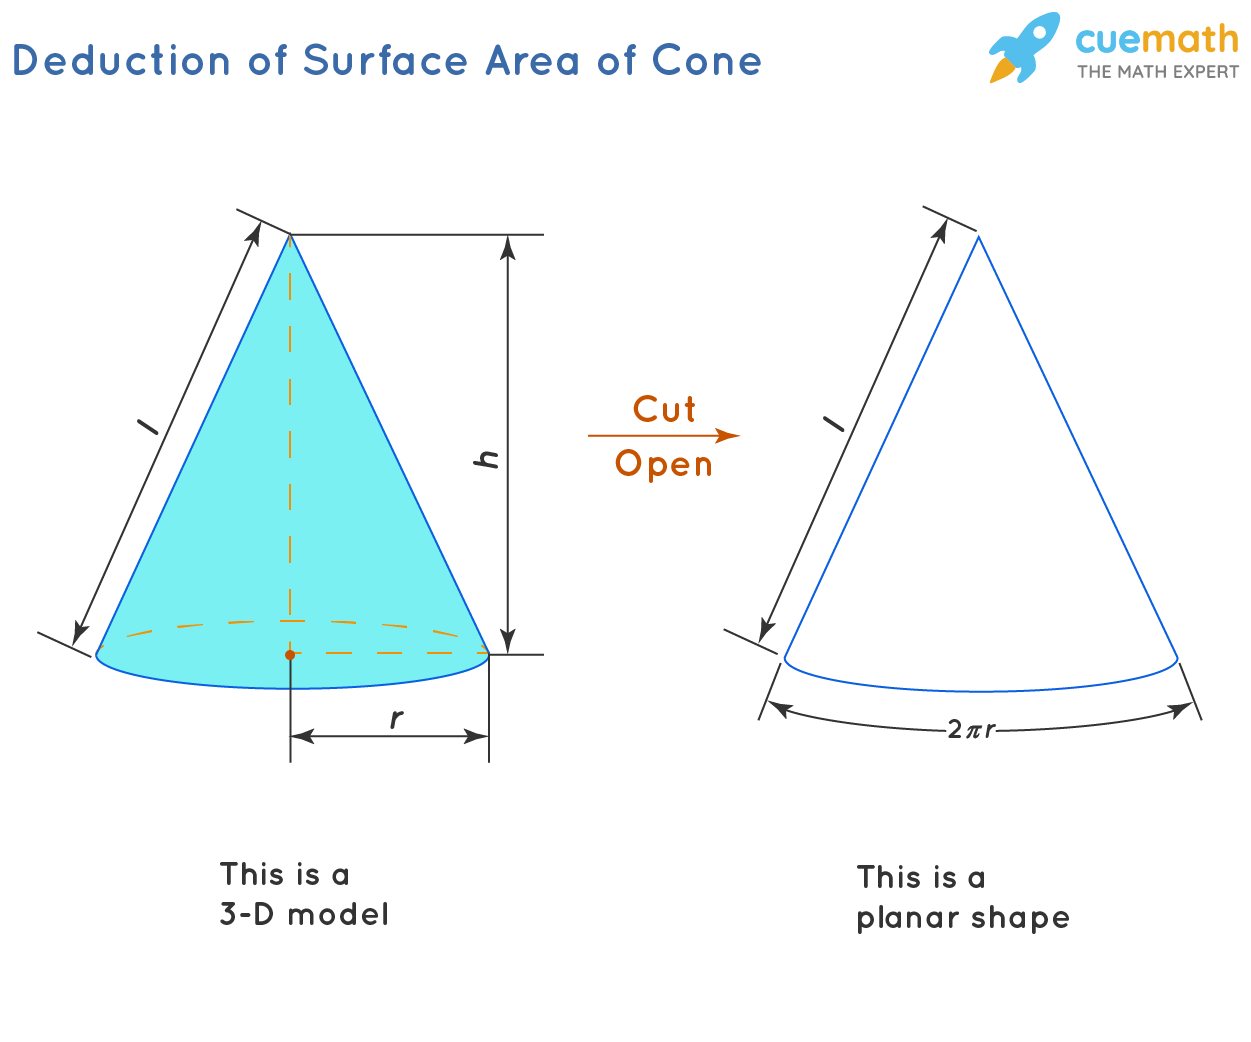 Deduction of Surface Area of Cone